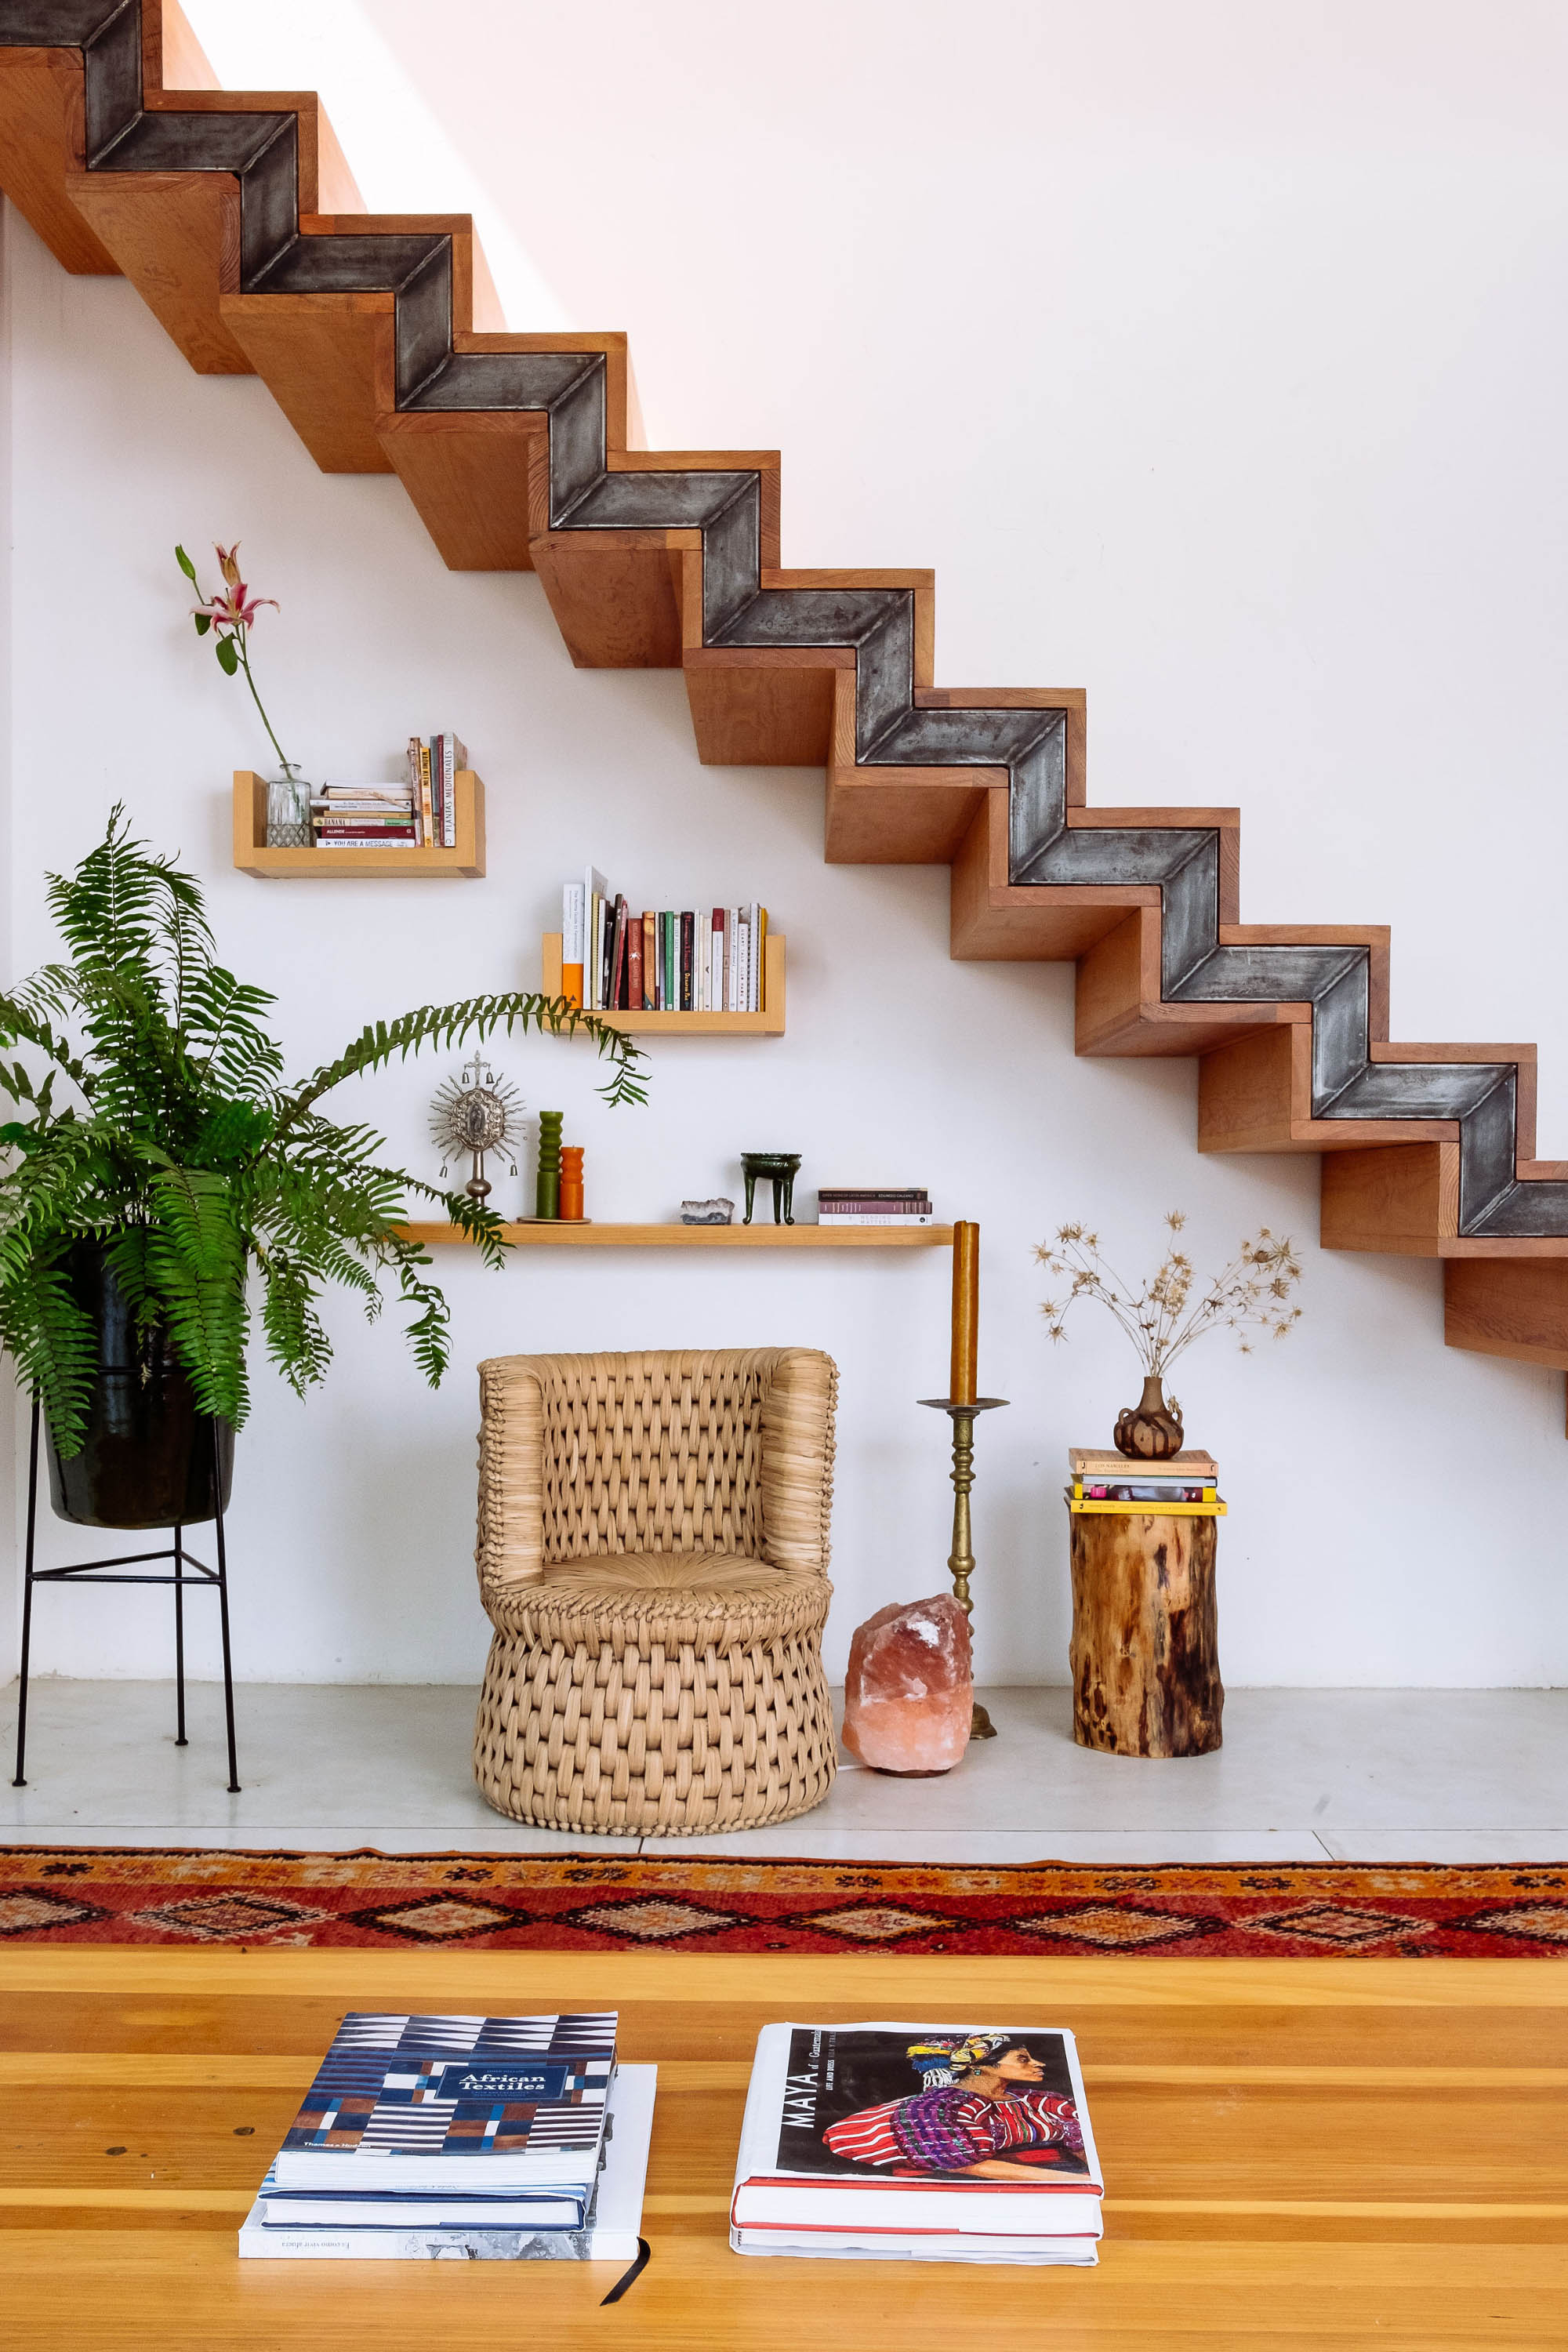 At Home with Caitlin Garcia-Ahern in Oaxaca, Mexico